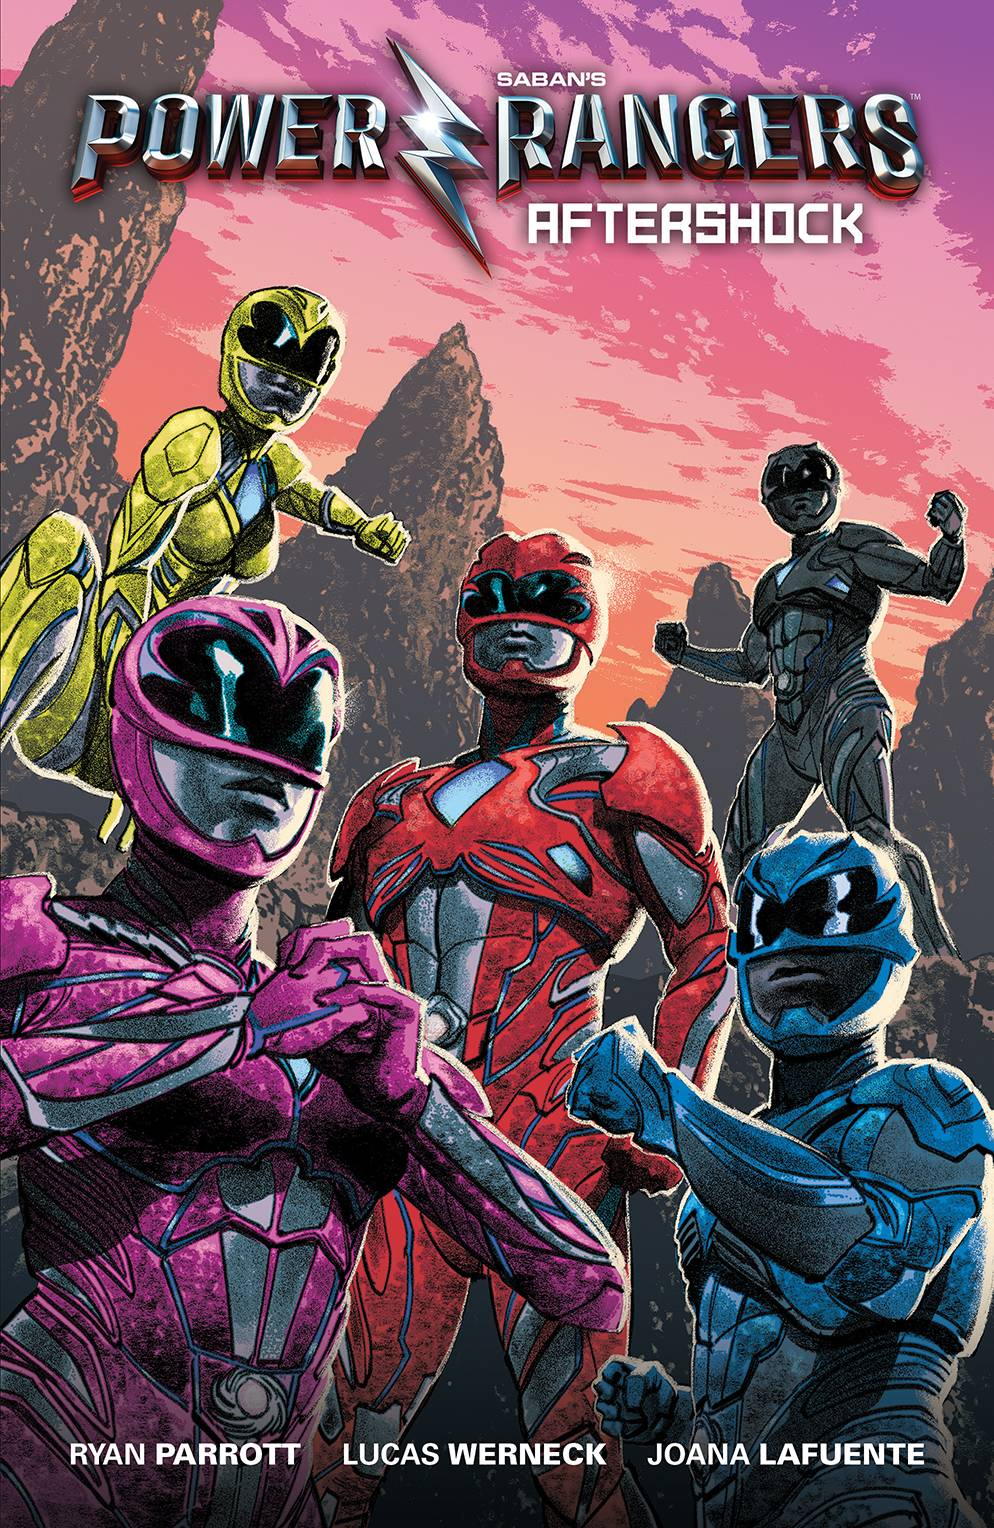 SABAN POWER RANGERS AFTERSHOCK MOVIE GN PREVIEWS EXC CVR